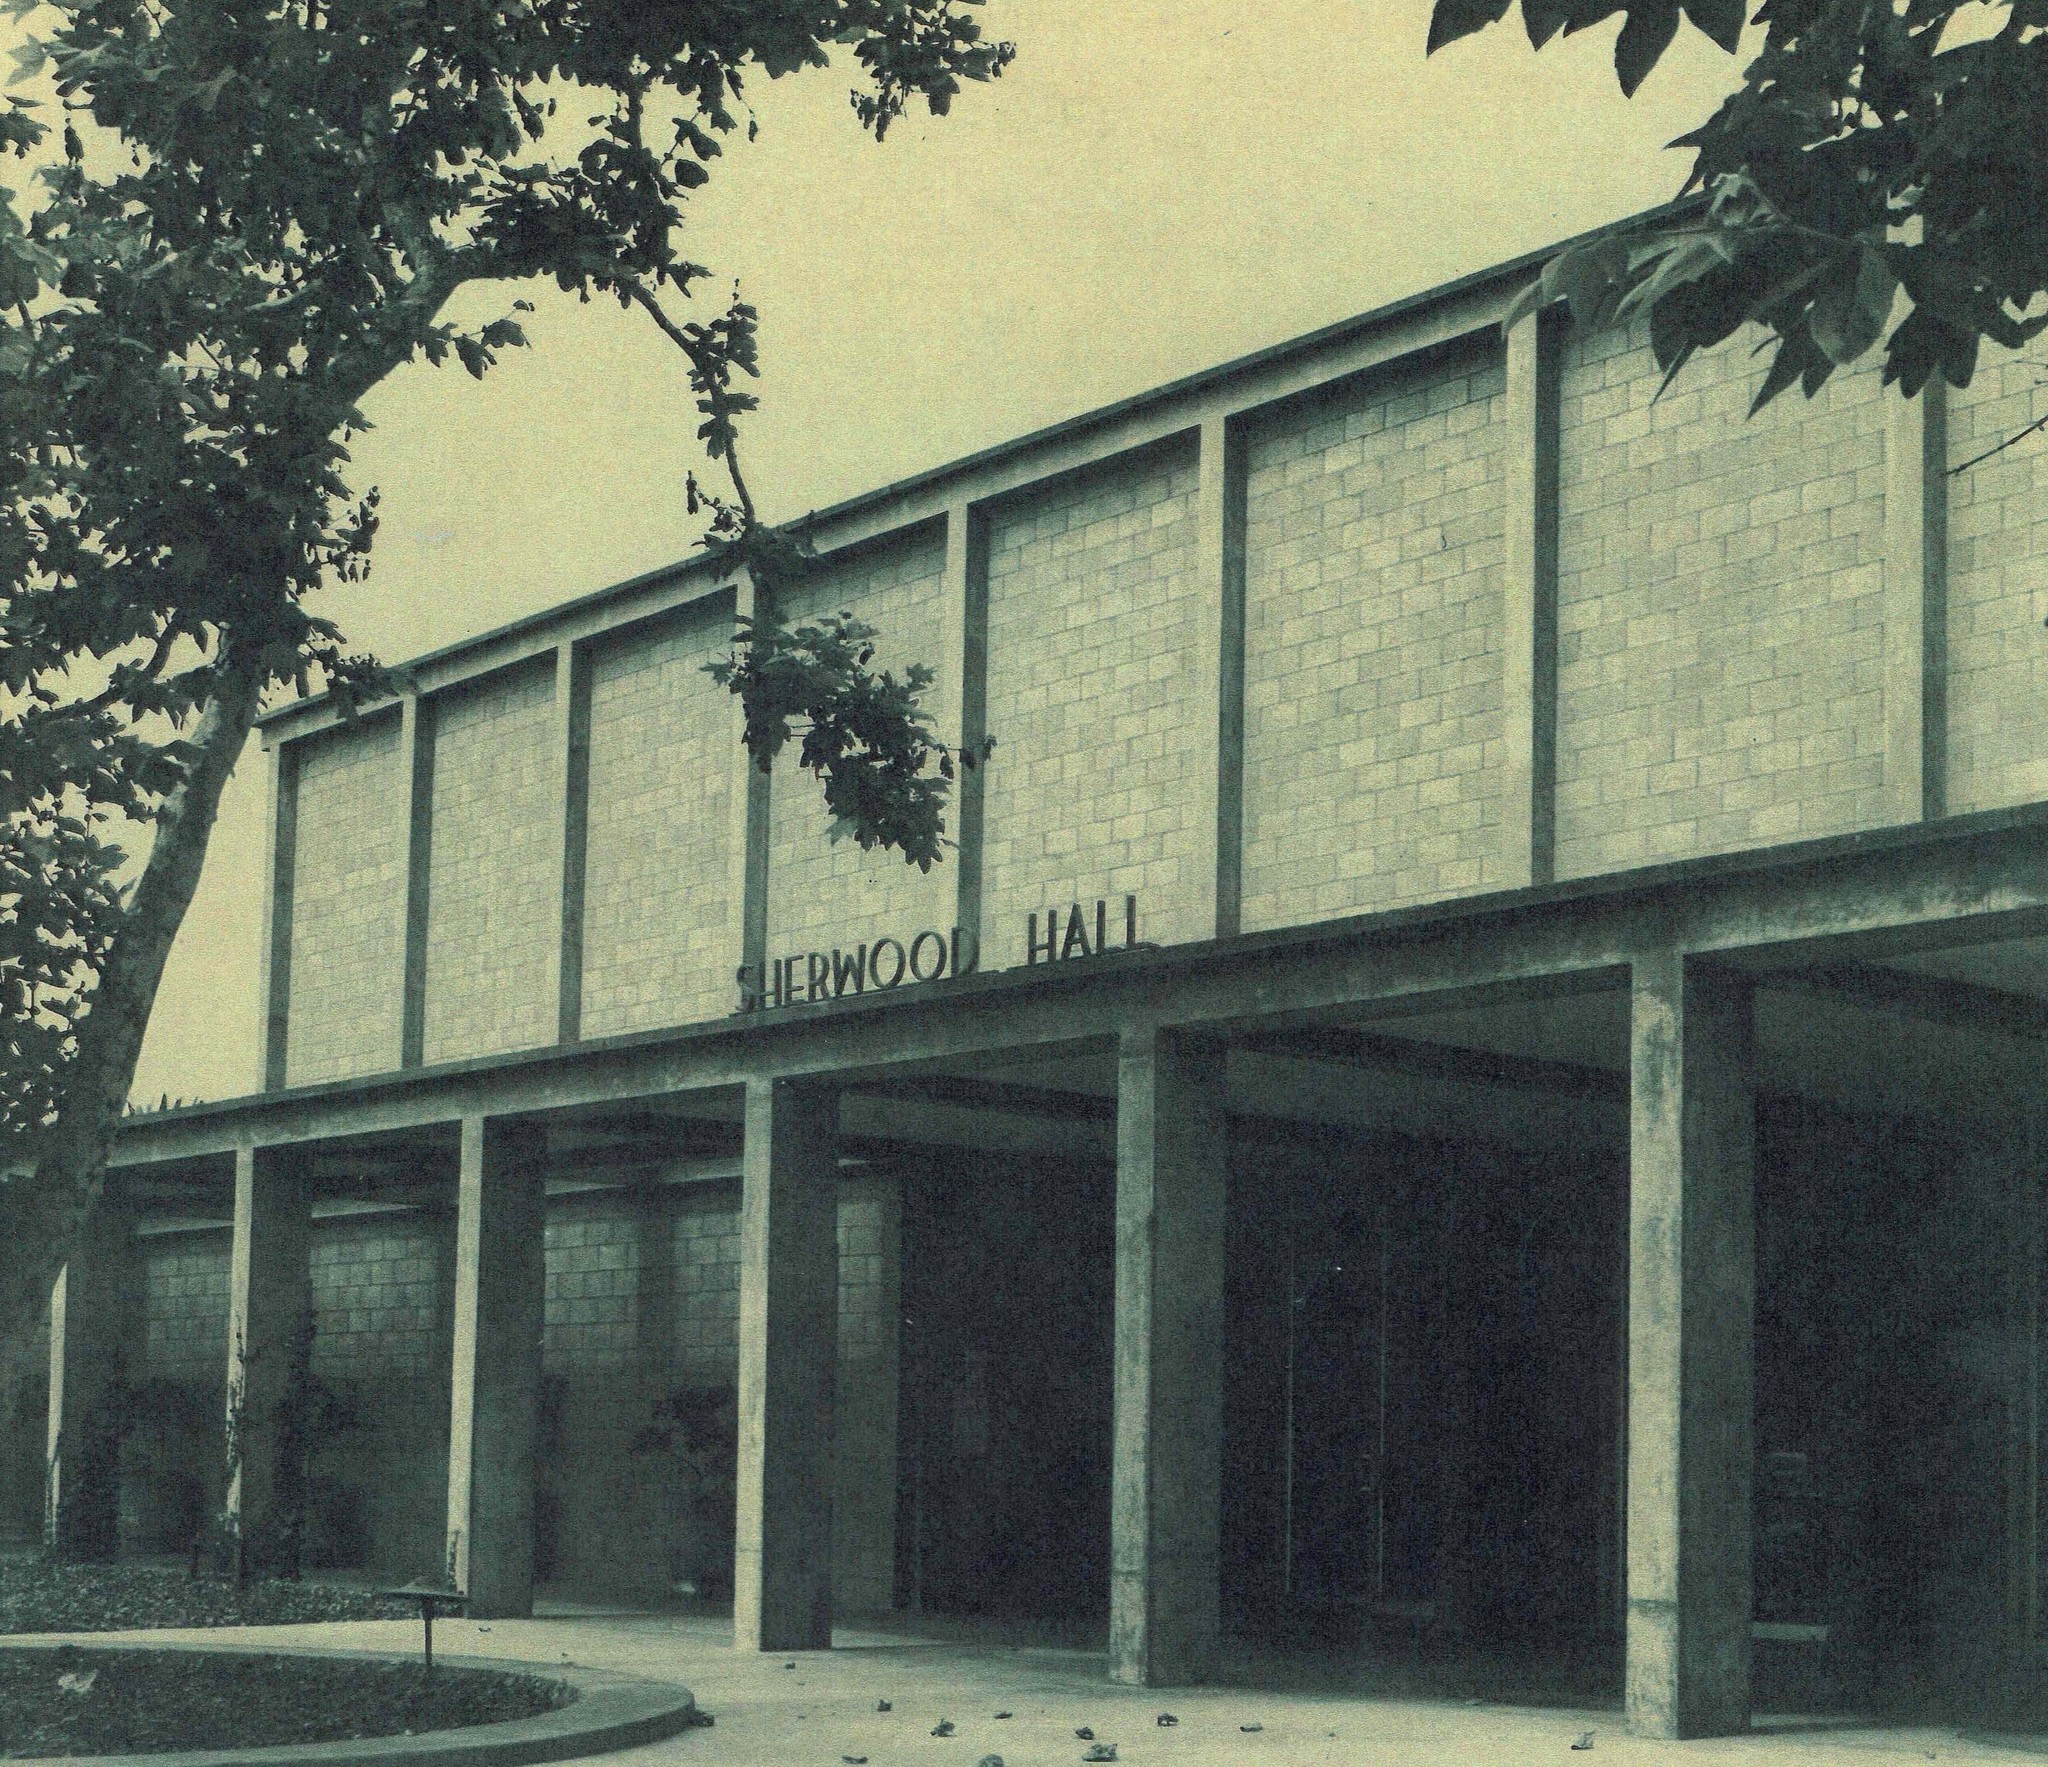 This facade for the Sherwood Auditorium, designed by Mosher Drew in 1960, was torn down and rebuilt by VSB in 1996.